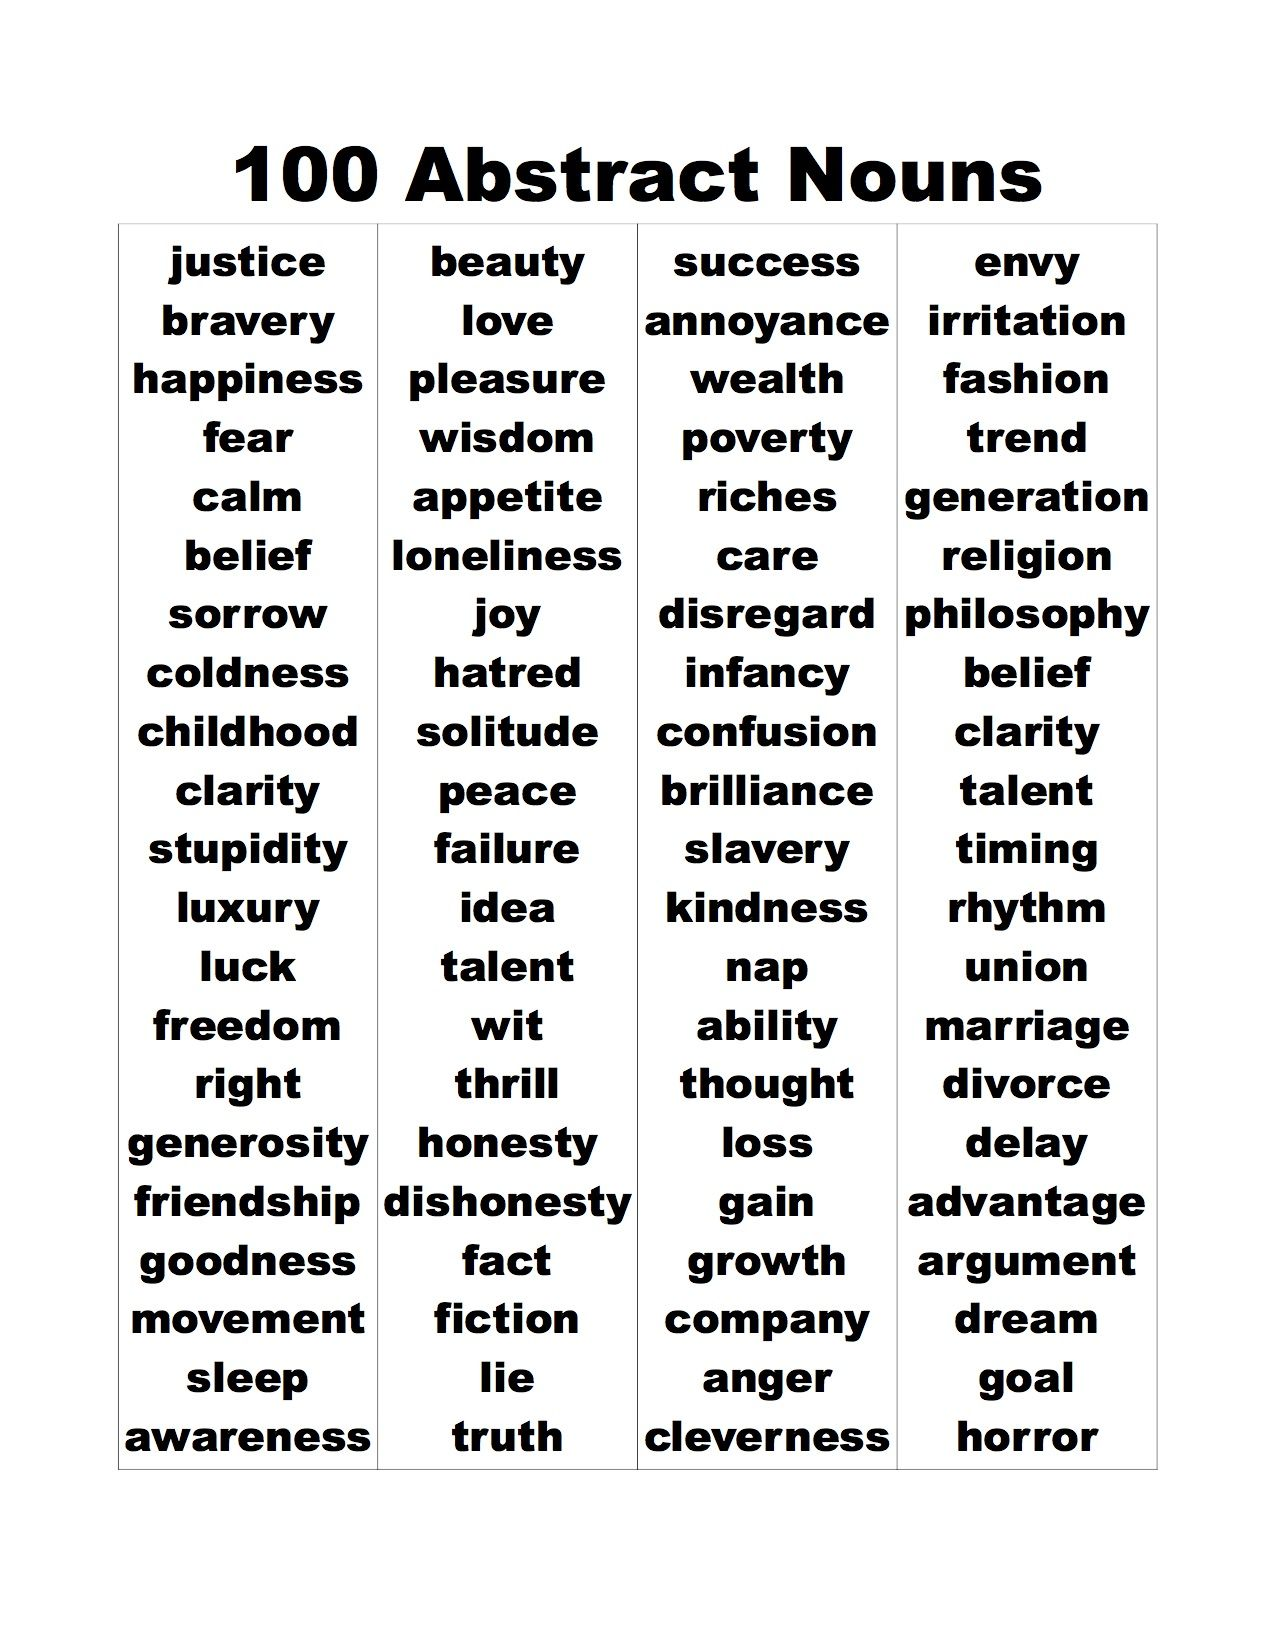 3 Abstract Noun Lists